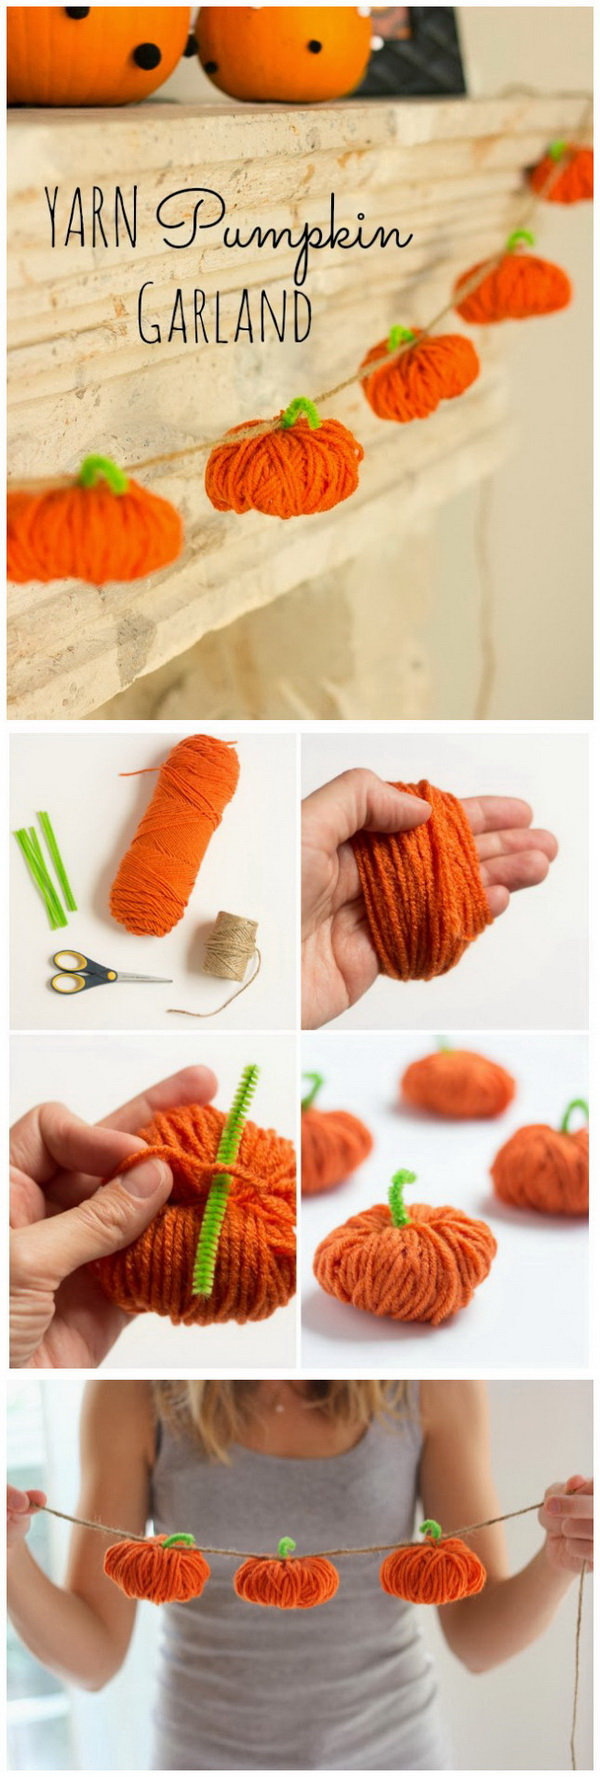 Yarn Pumpkin Garland. Make use of the leftover yarn stash at home and whip up a cute string of festive fall decor. It is perfect for your mantle!